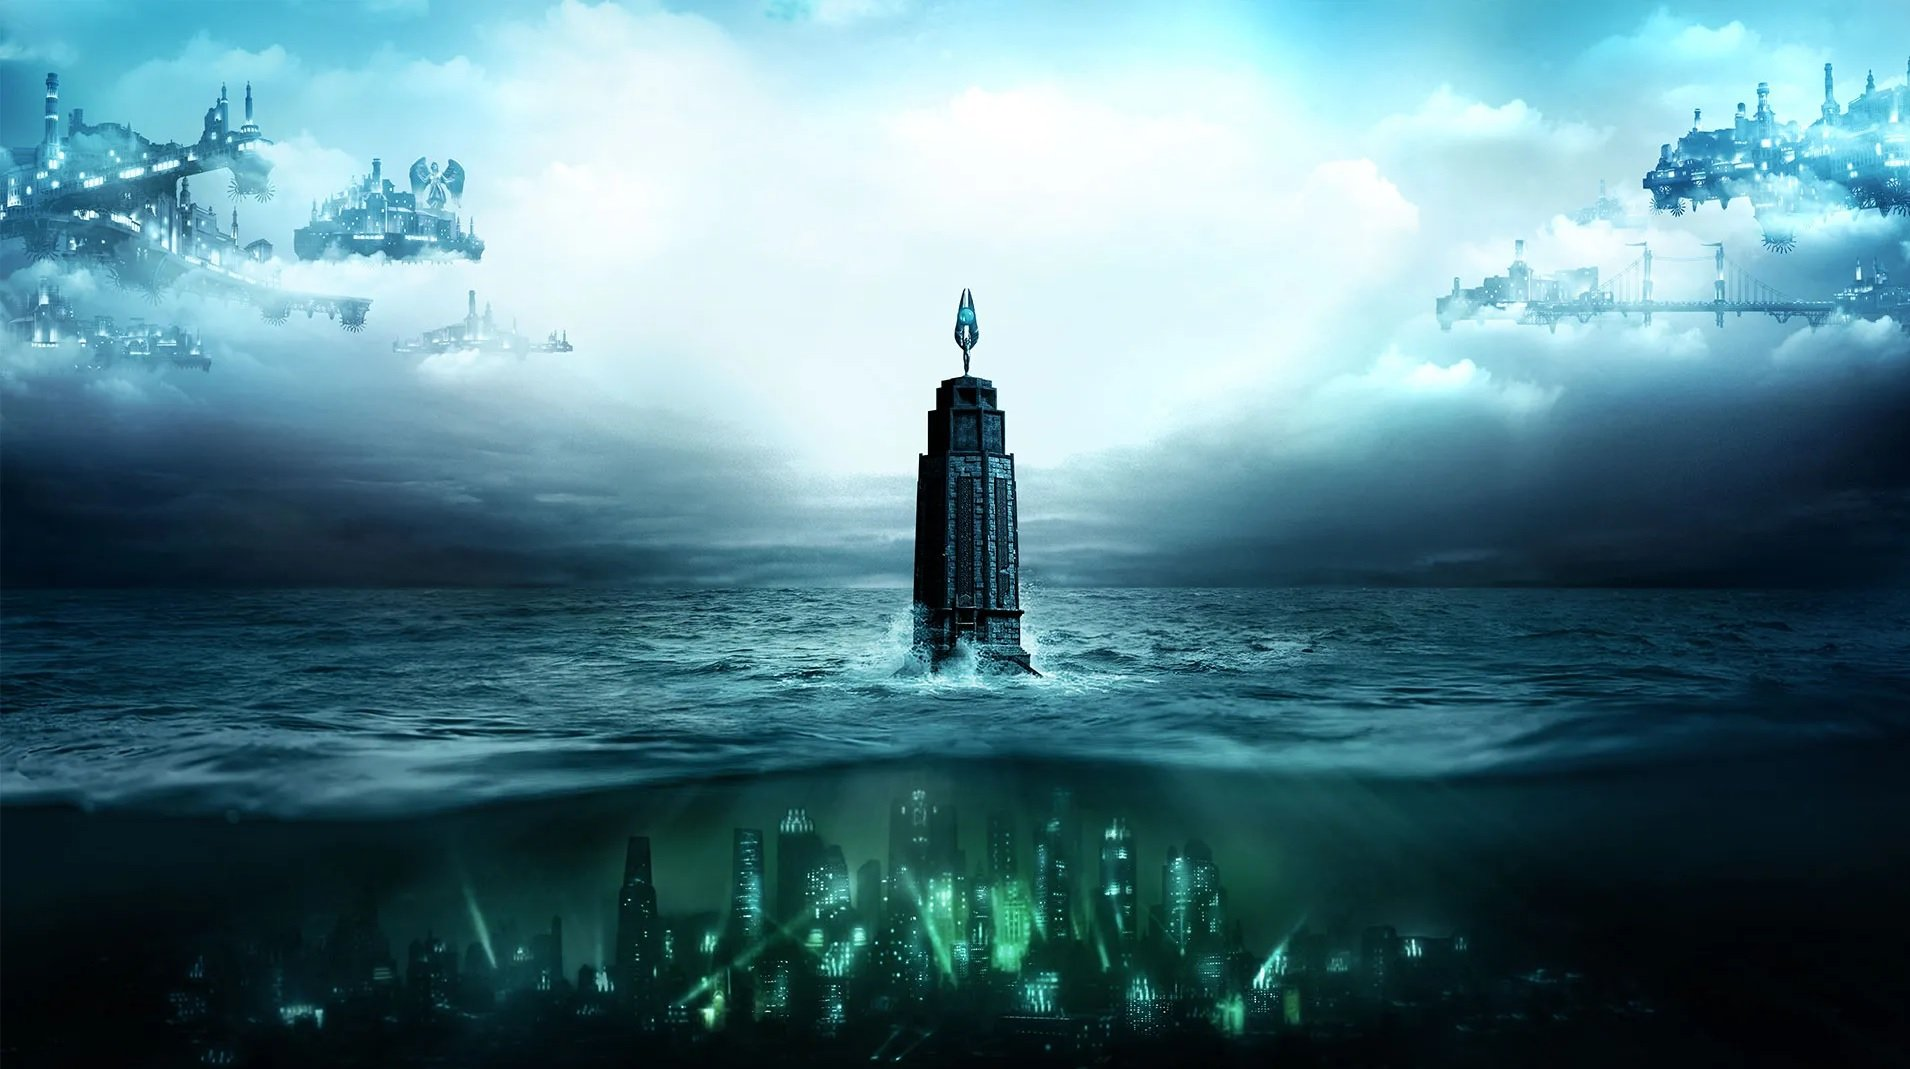 BioShock 4 will take place in 'a new and fantastical world', job listing suggests - Video Games Chronicle